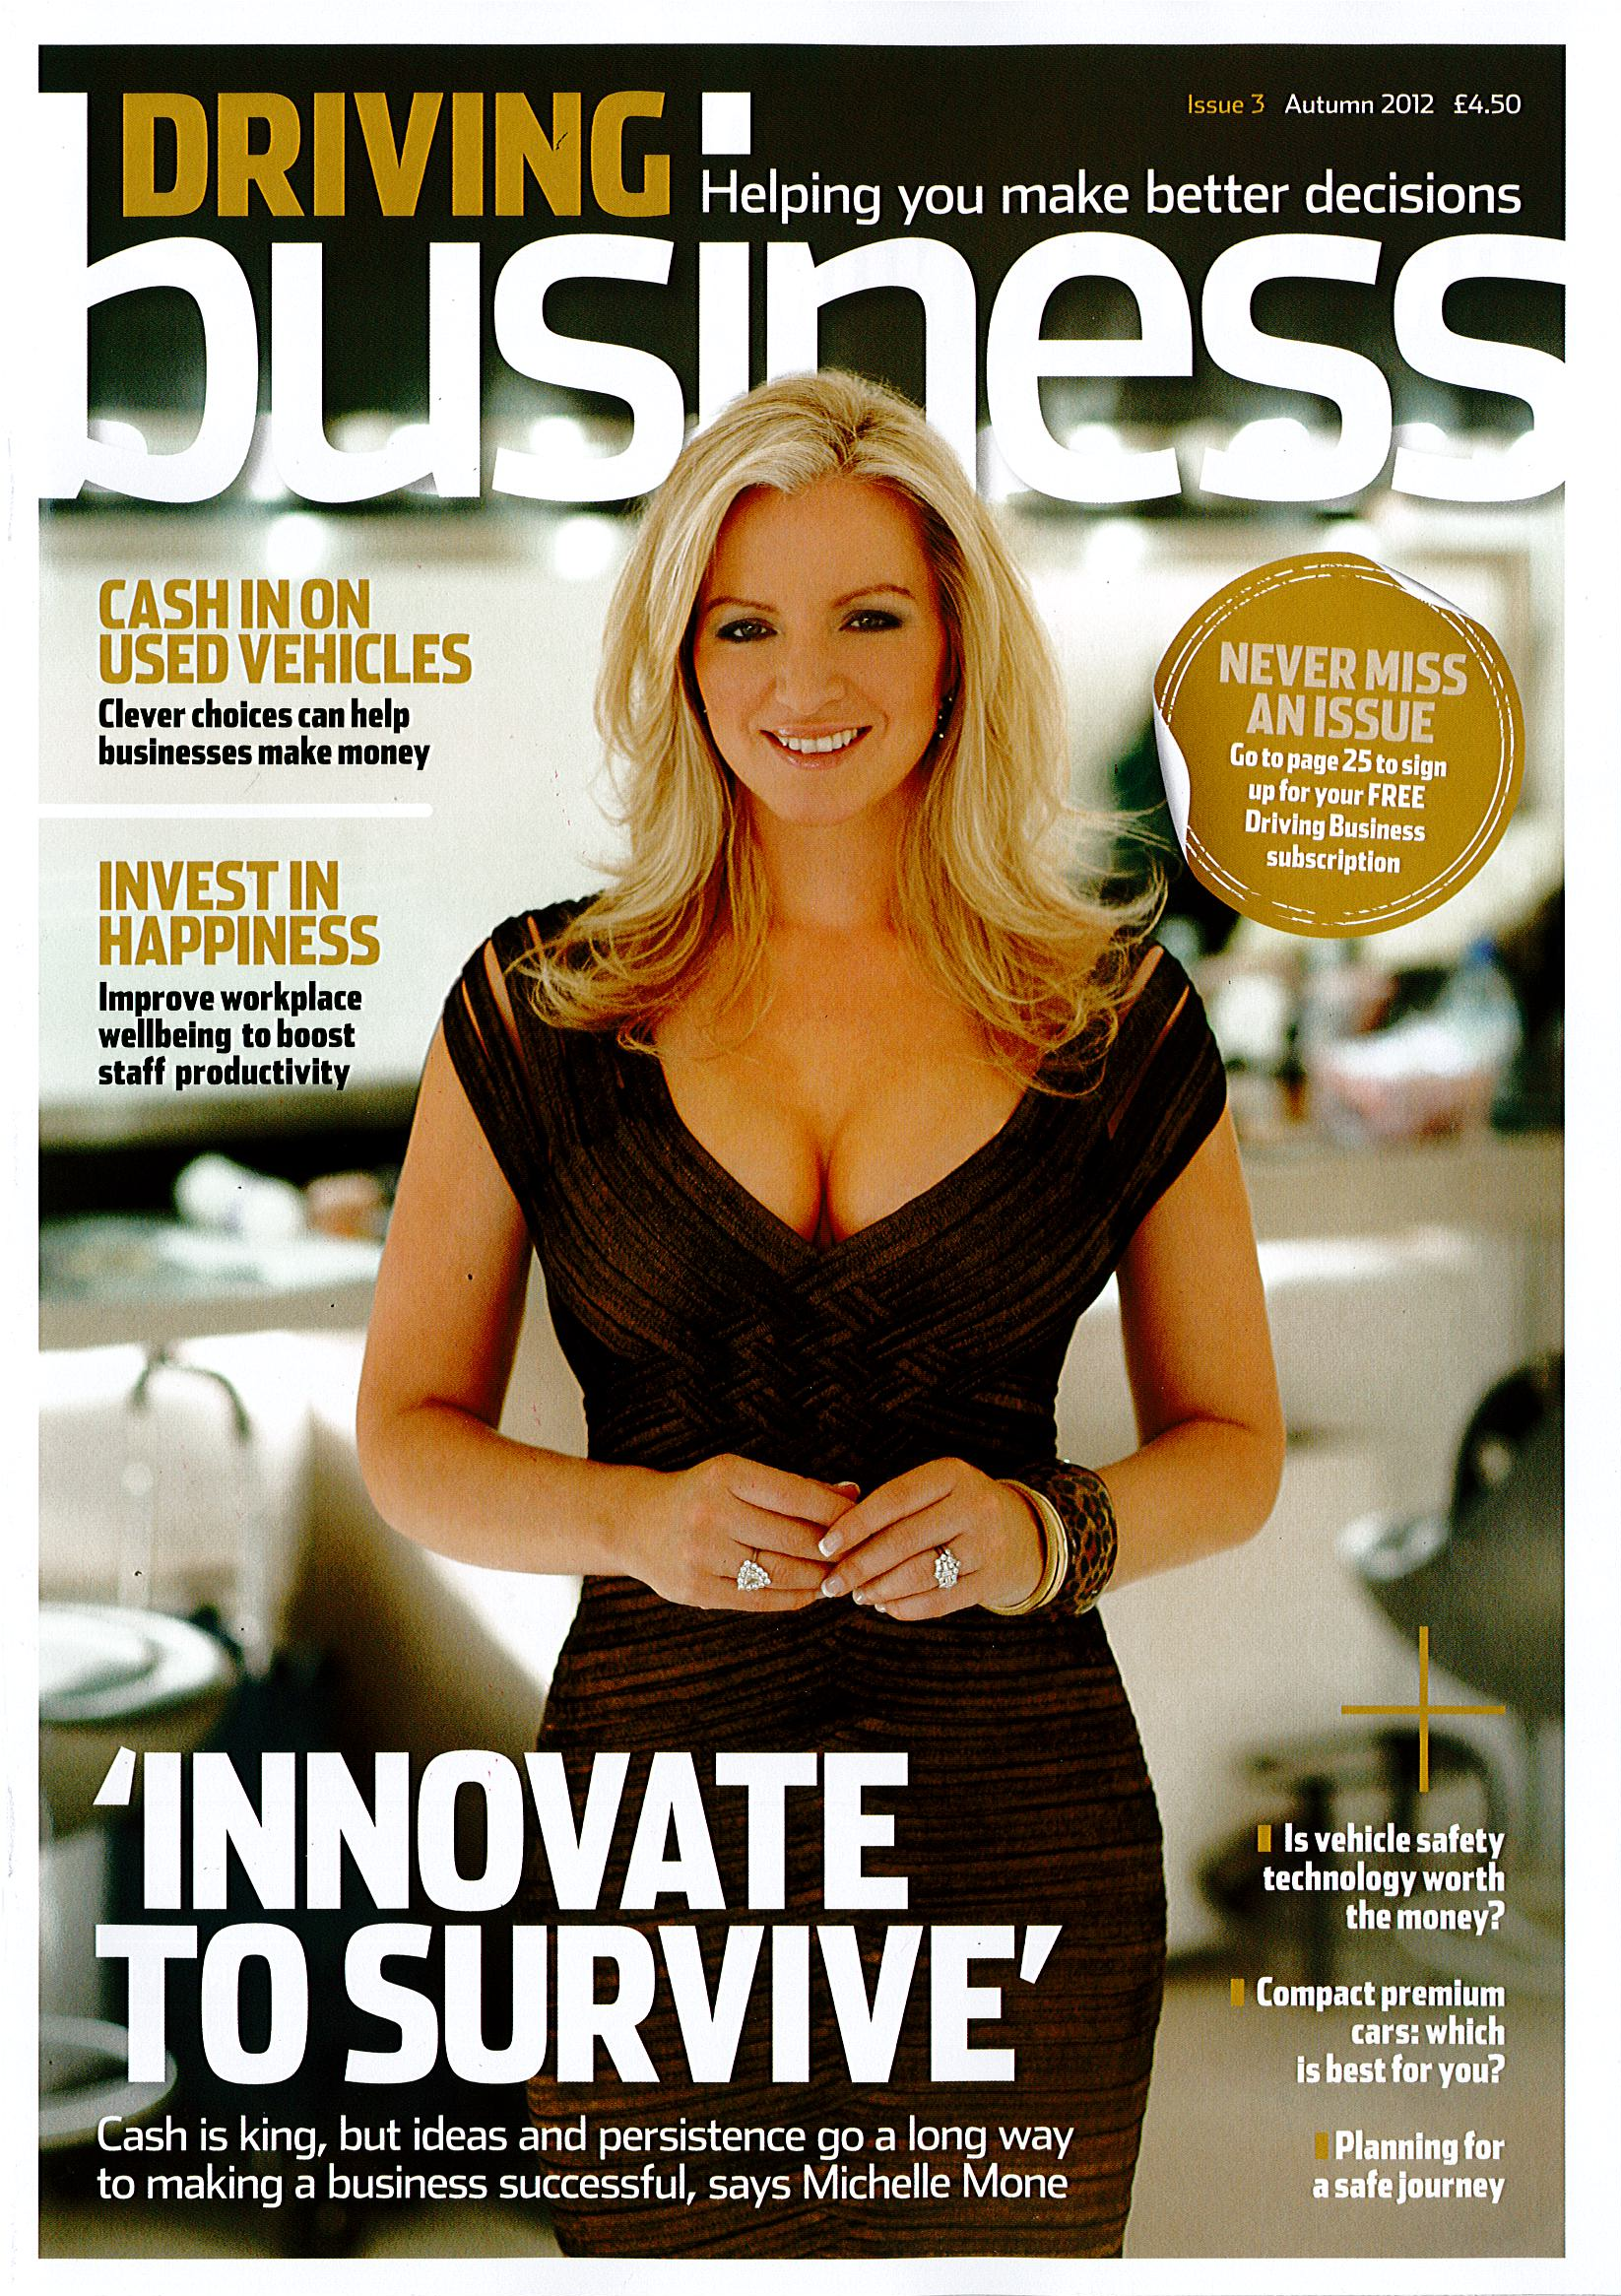 Driving-Business-Magazine-Michelle-Mone-Monday29thOctober2012-Front-Cover